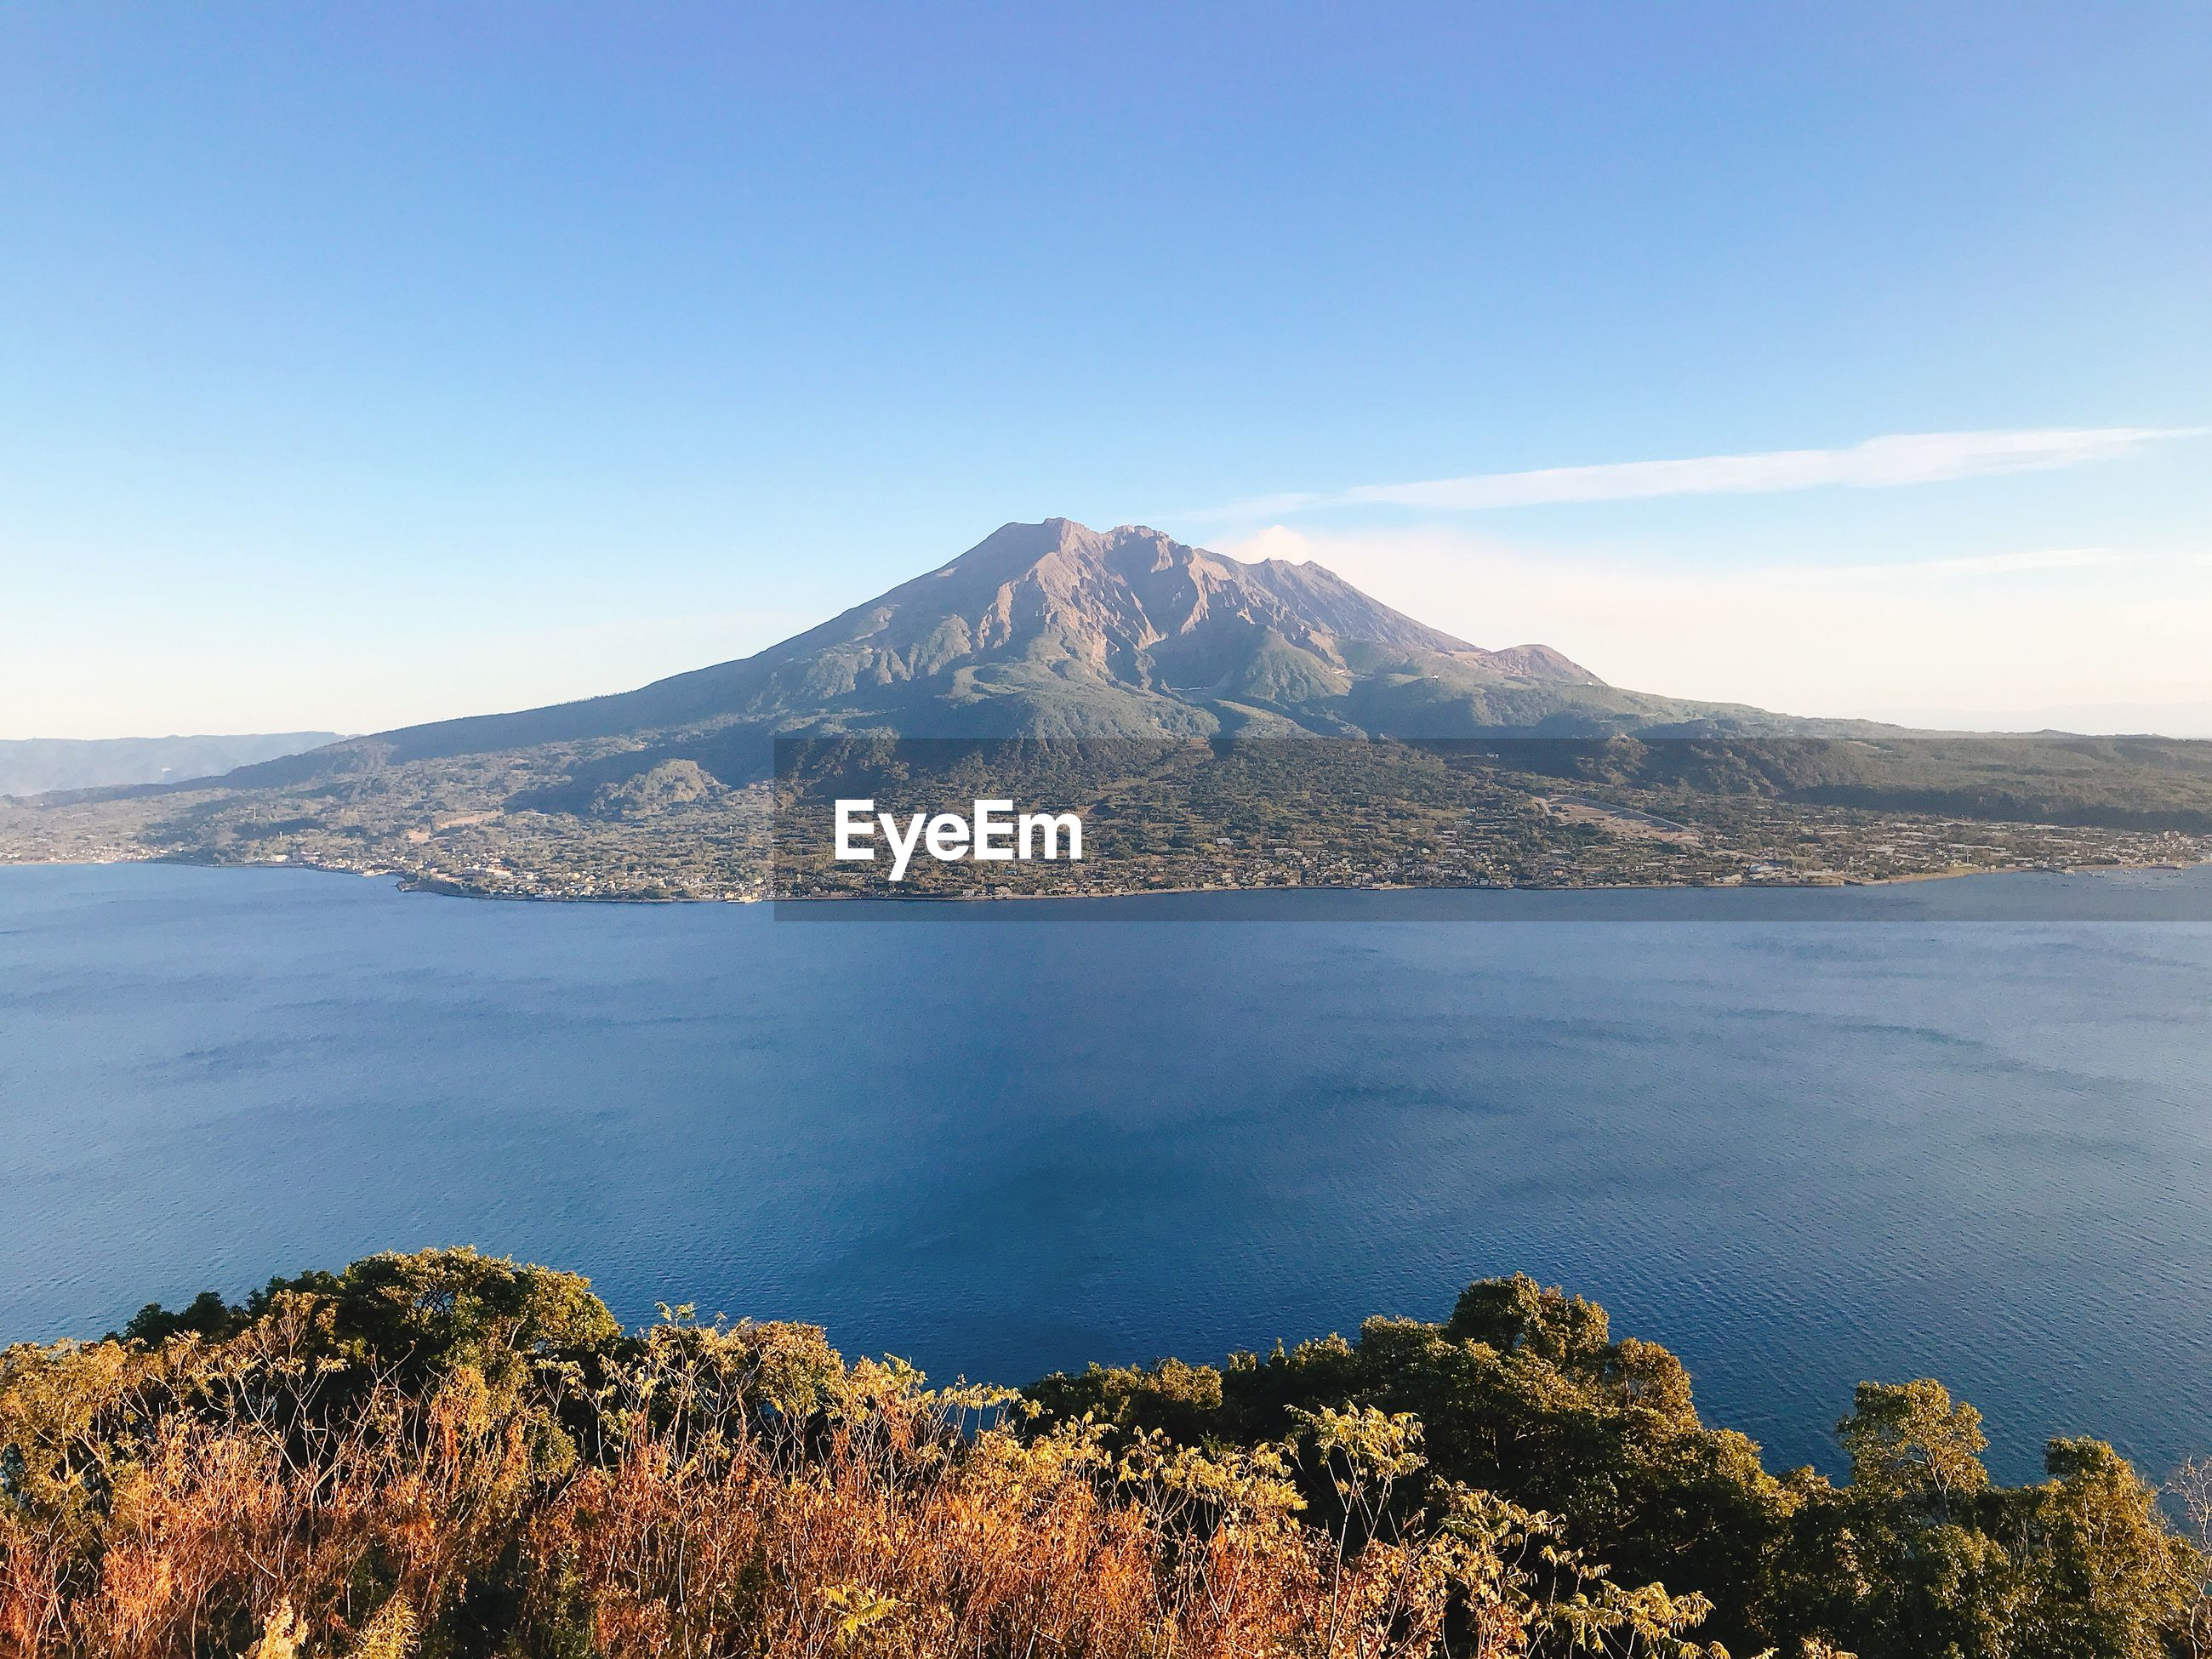 SCENIC VIEW OF SEA AND MOUNTAIN AGAINST BLUE SKY